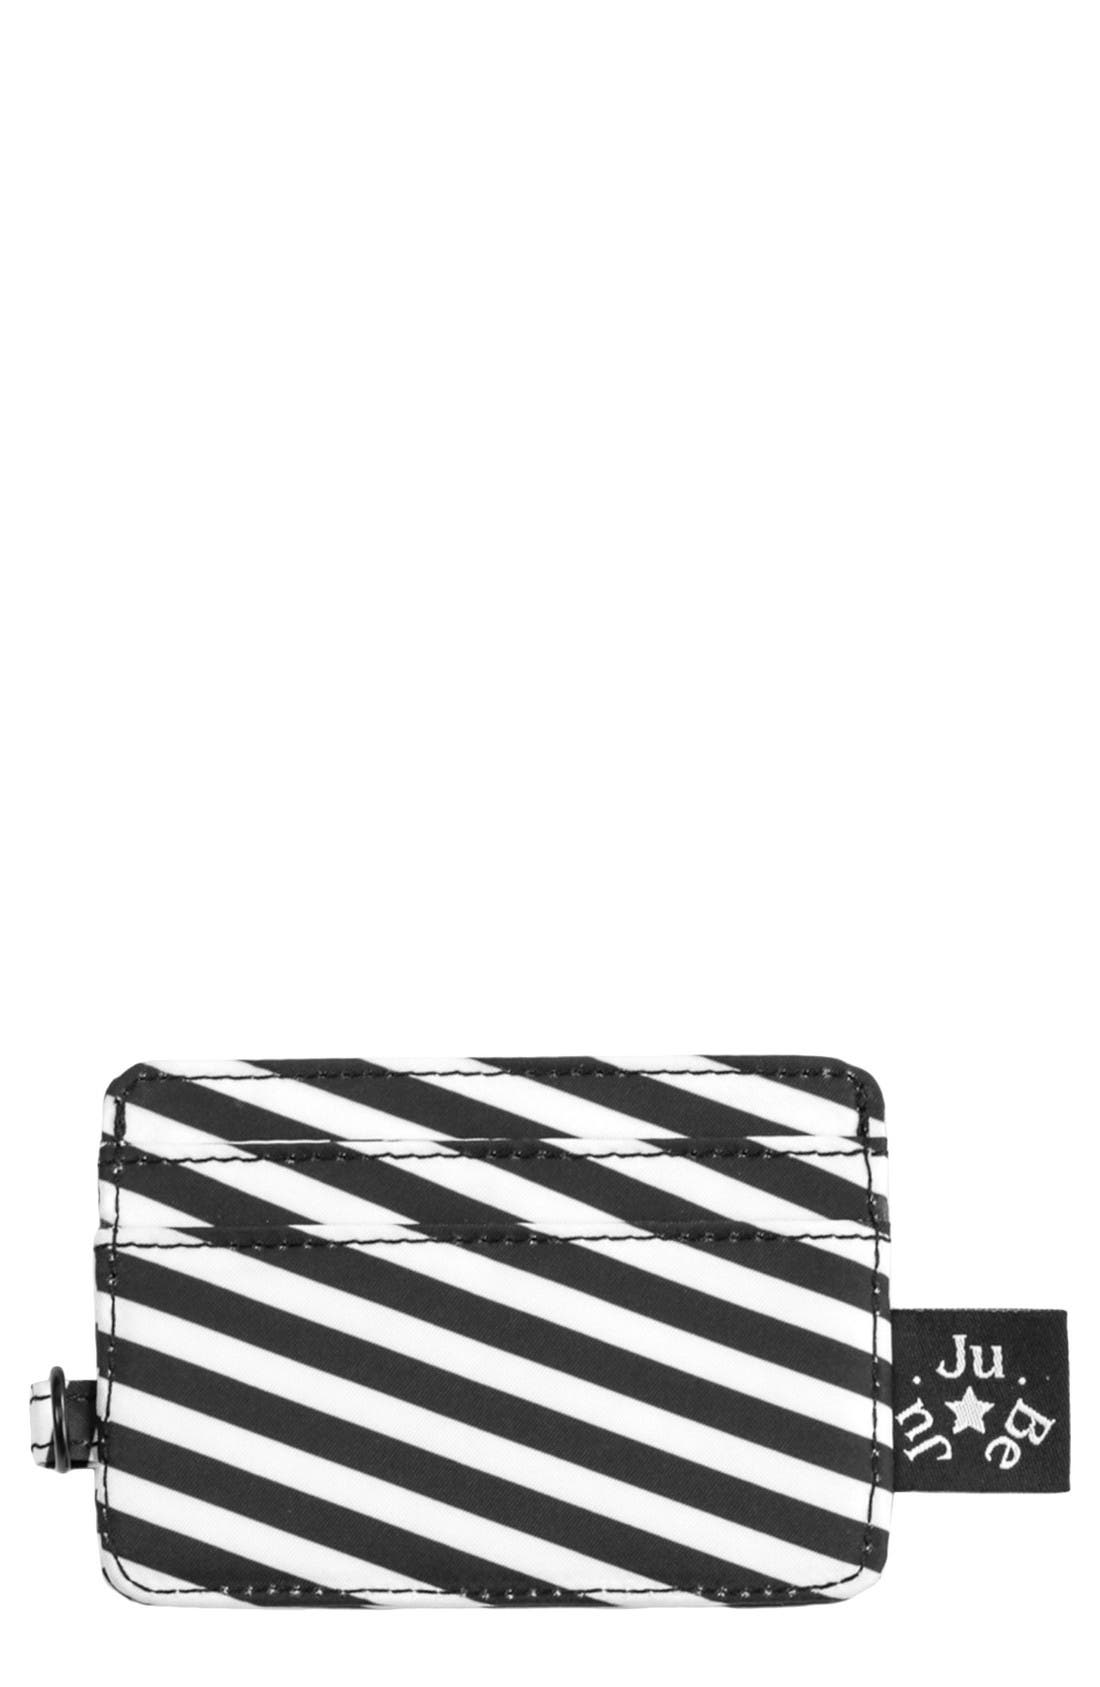 Main Image - Ju-Ju-Be Legacy Be Charged Card Case